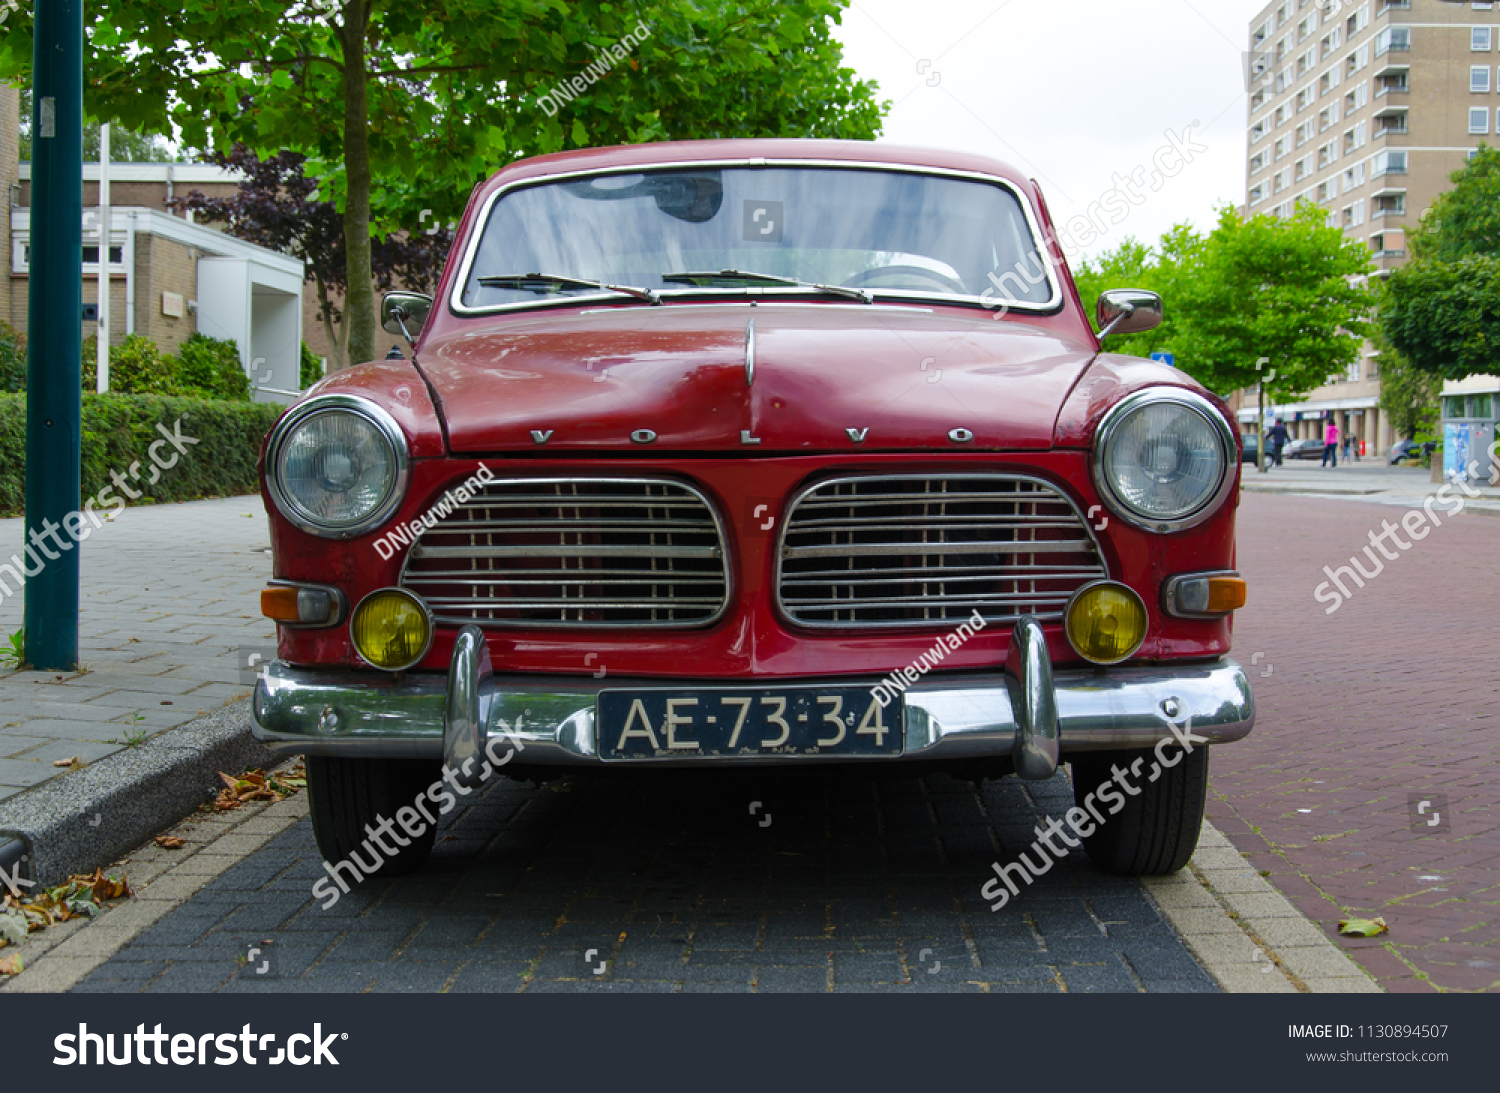 Volvo Dealer Delft Oegstgeest Netherlands 09072018 Red Old Volvo Stock Photo Edit